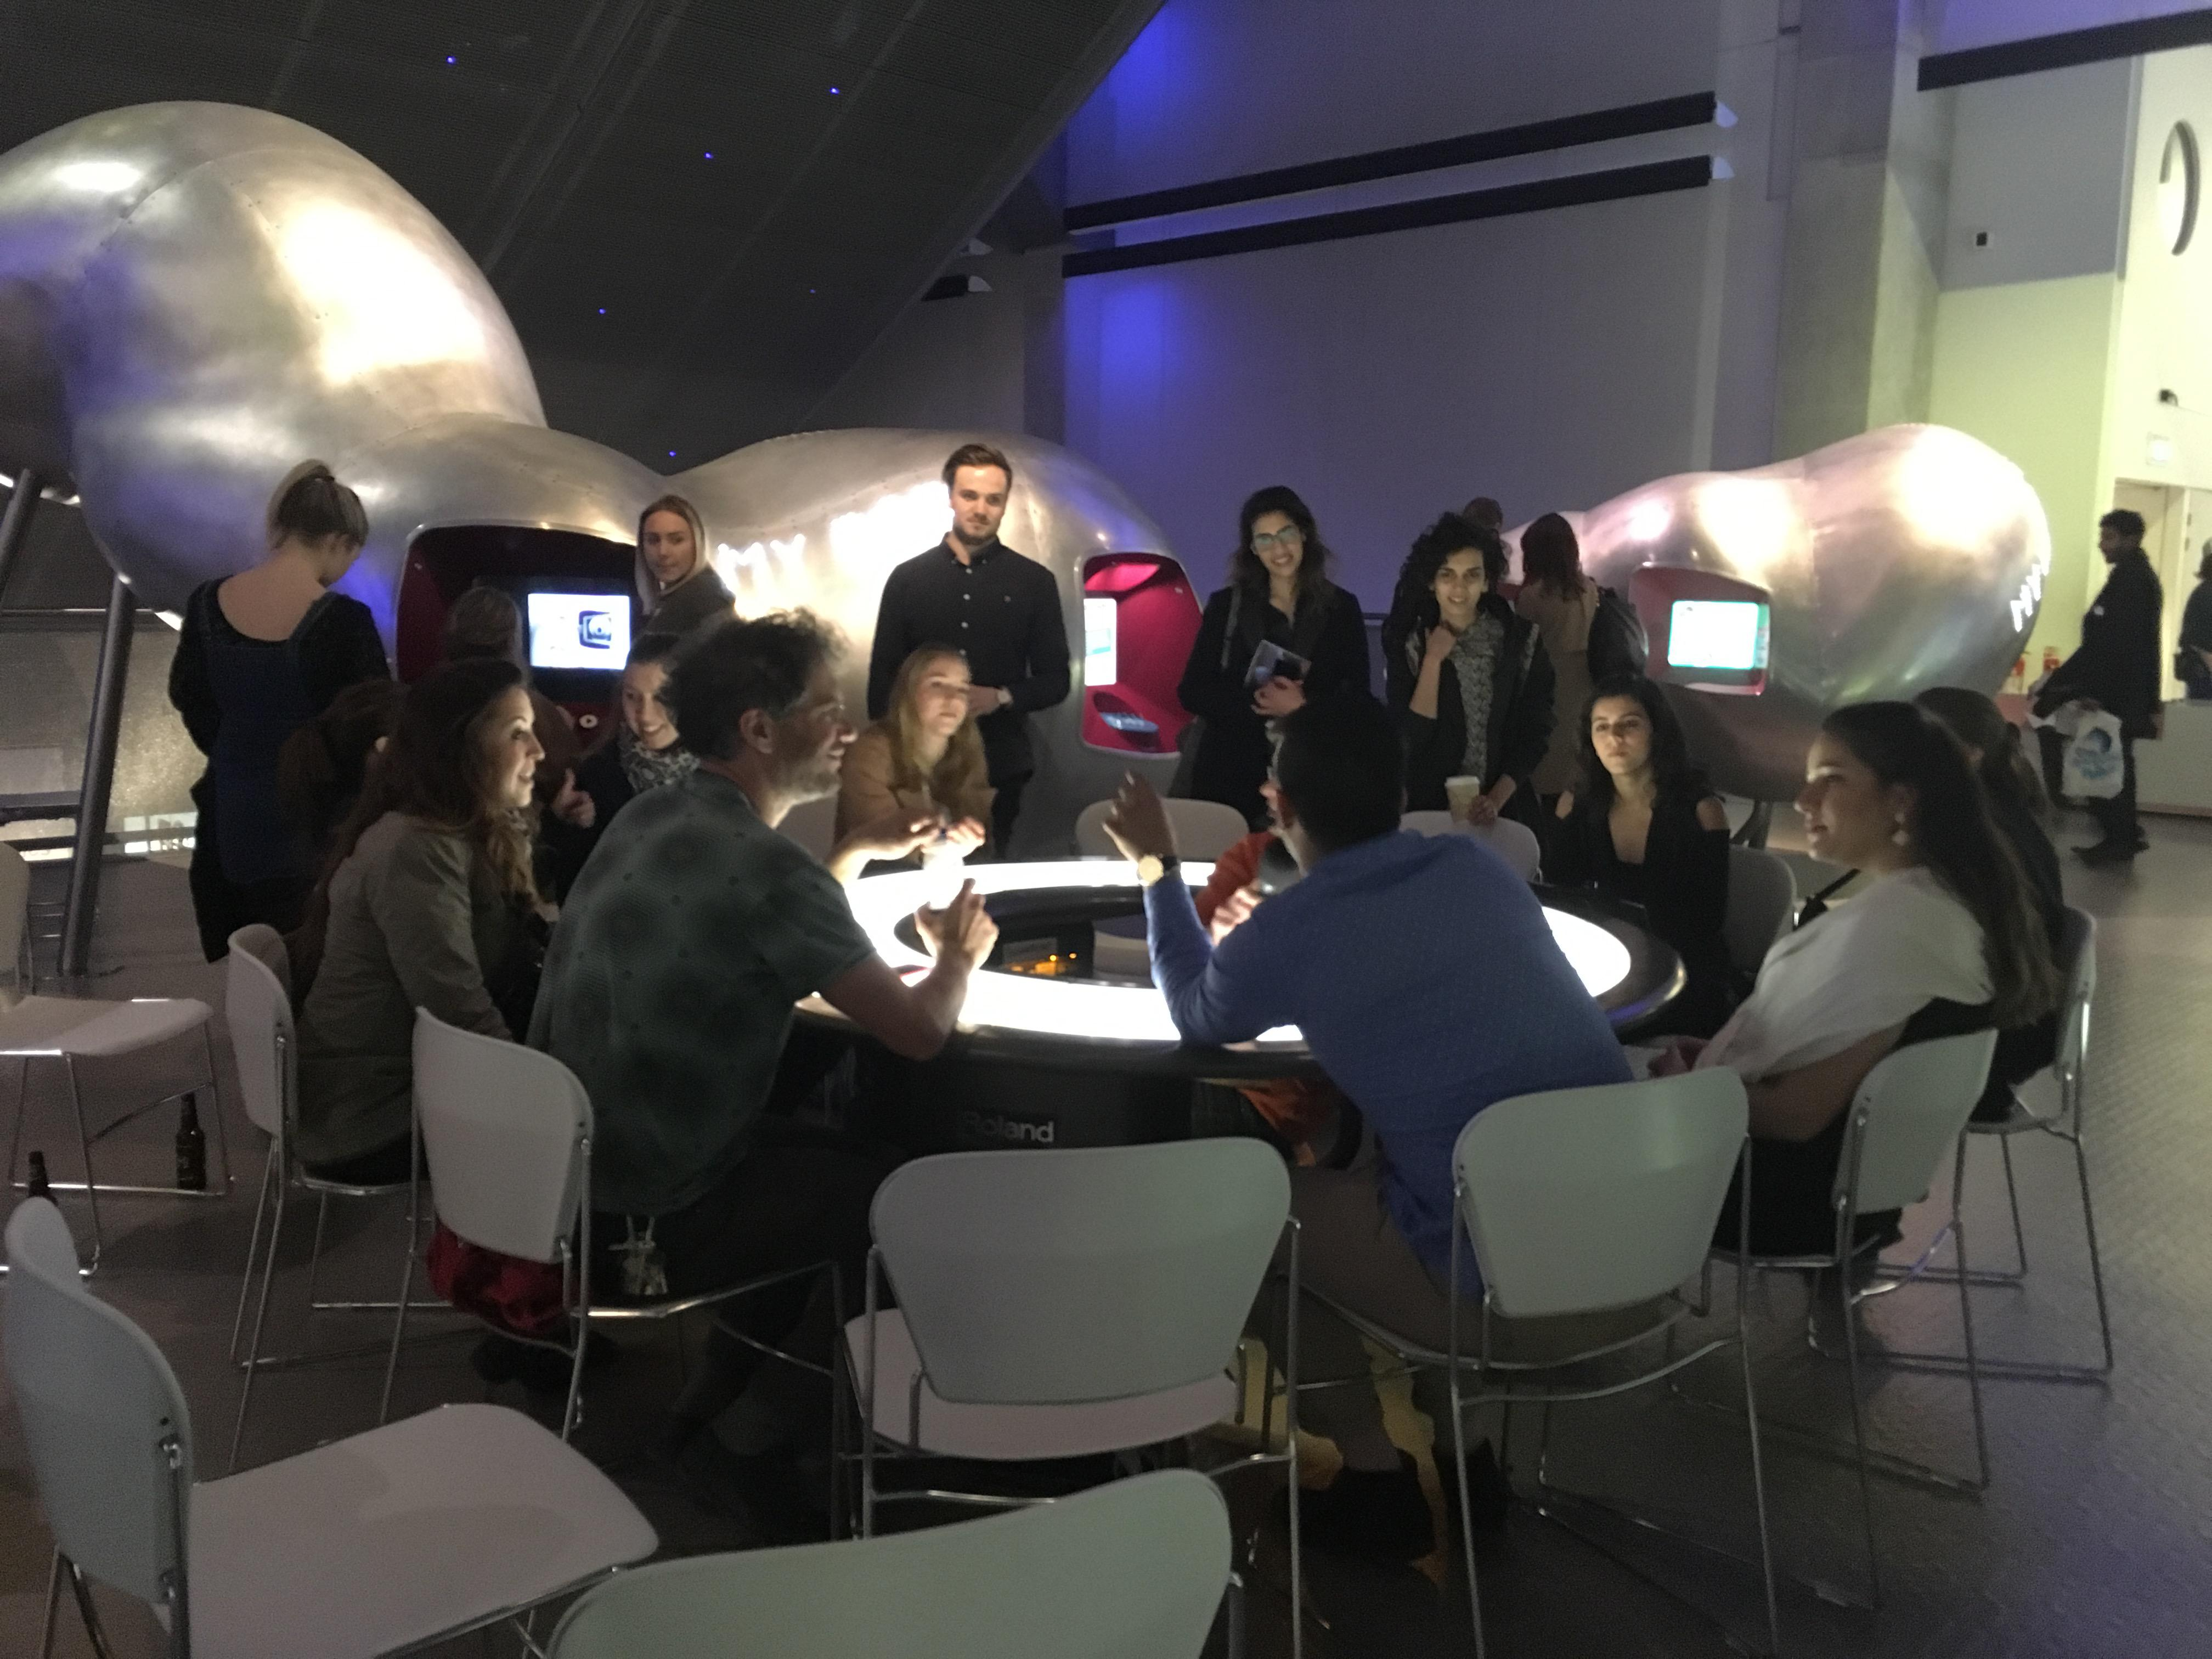 Reversed Science Café at the Science Museum, London, UK - Sparks project